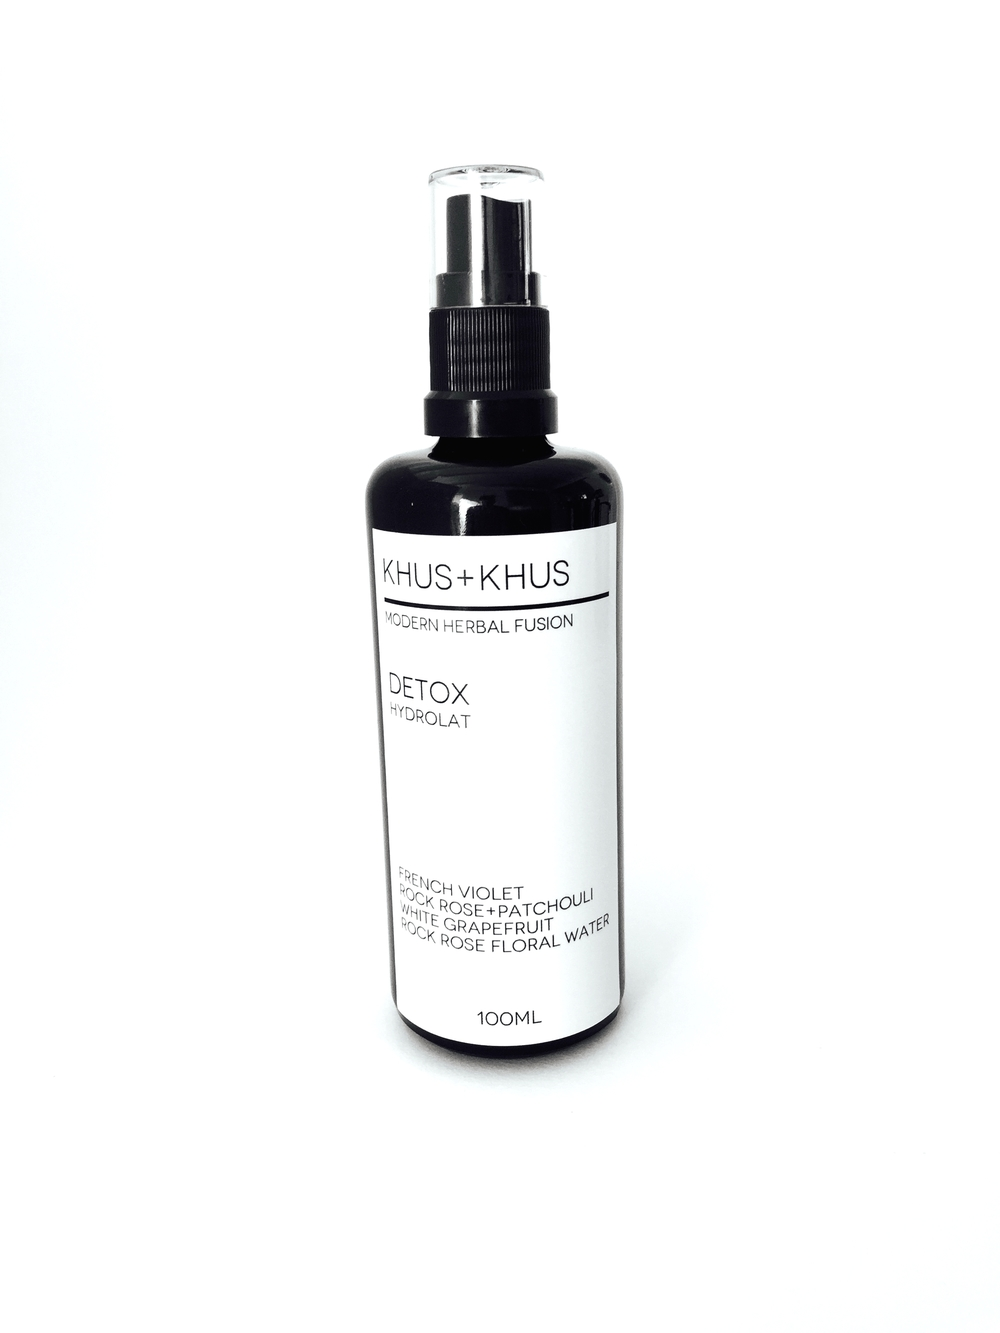 Acne Fighting Hydrolat: KHUS+KHUS Modern Herbal Fusion - discount with code jannyorganically15%